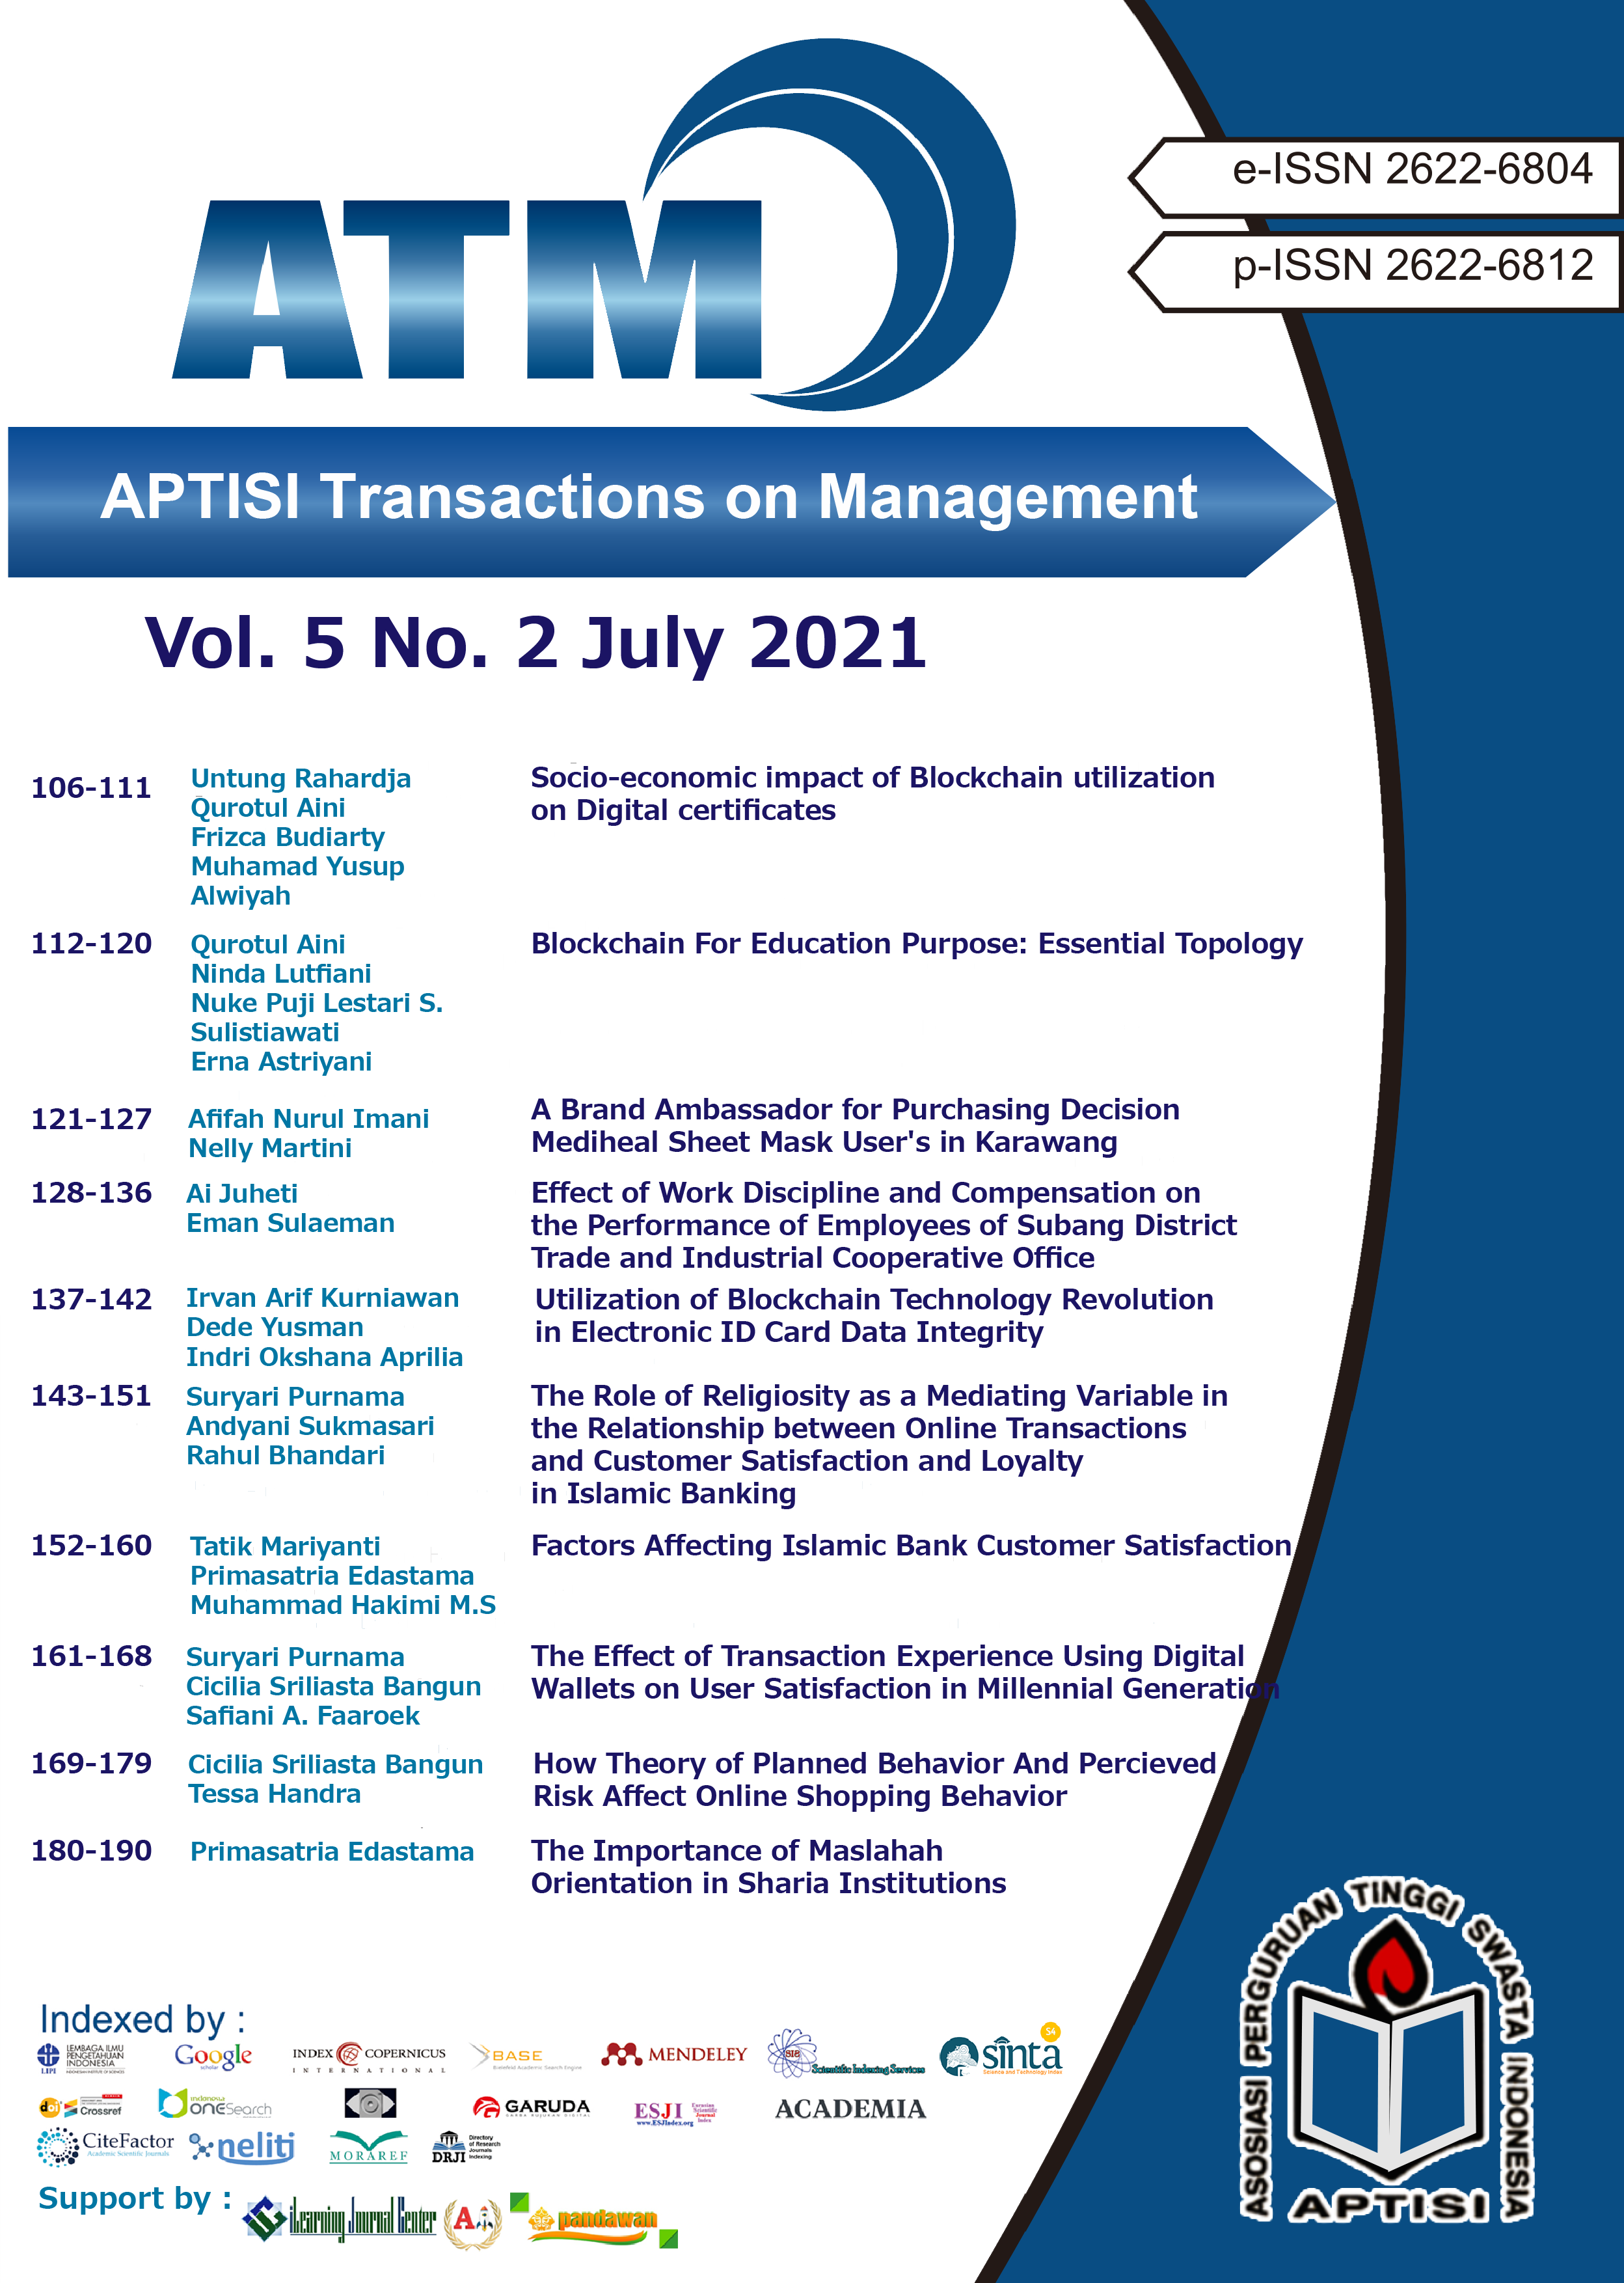 View Vol. 5 No. 2 (2021): ATM (APTISI Transactions on Management: July)